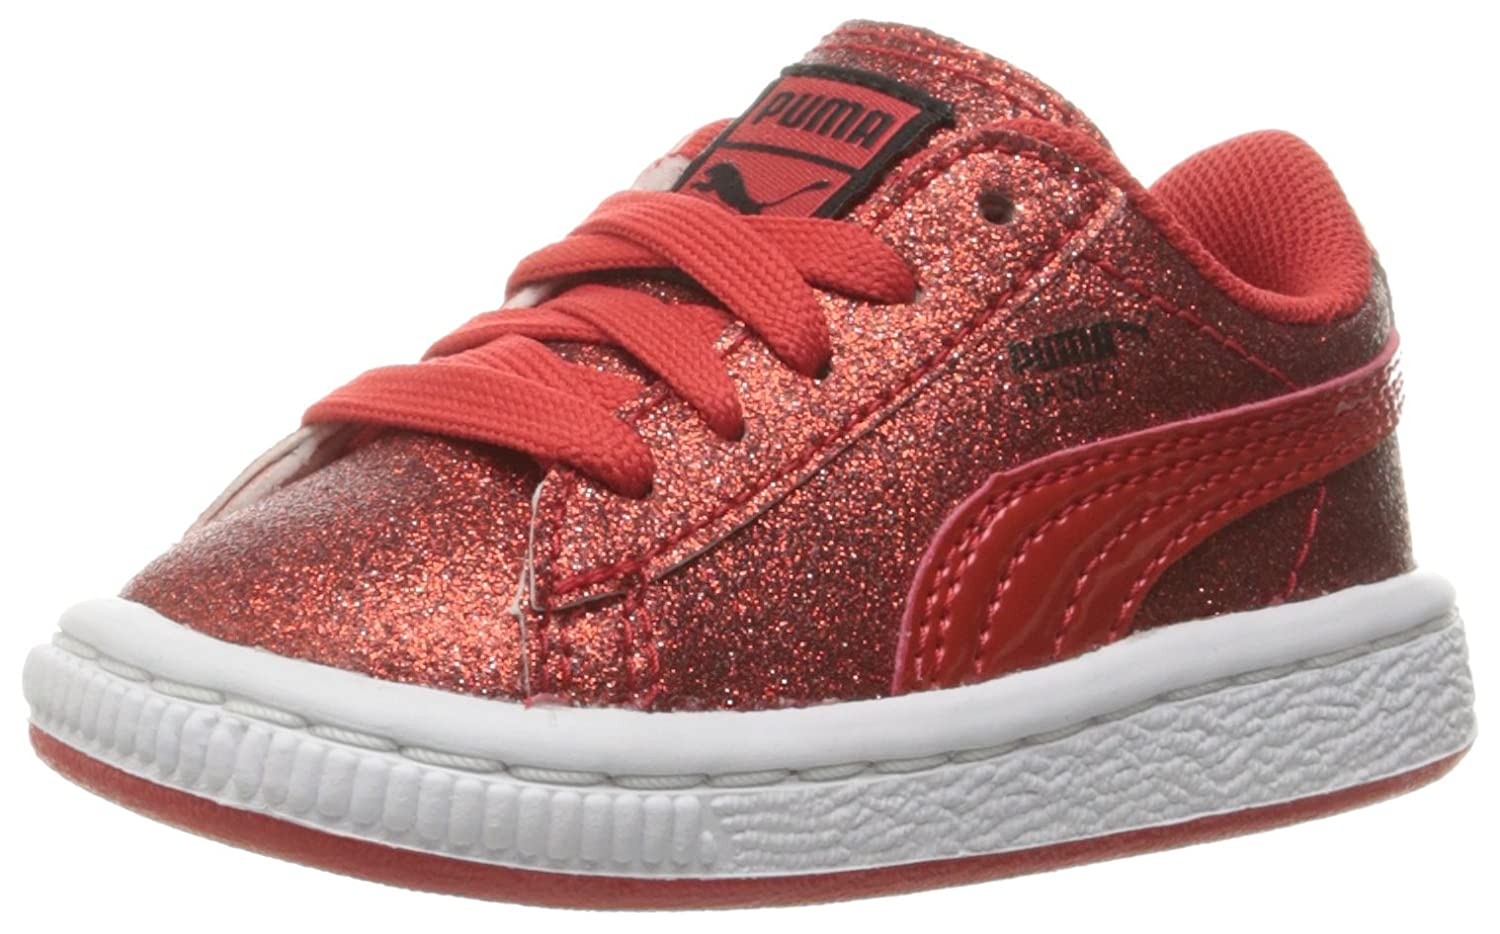 Kids Puma Glitz Holiday Sneakertoddler Basket dhrCtsQ